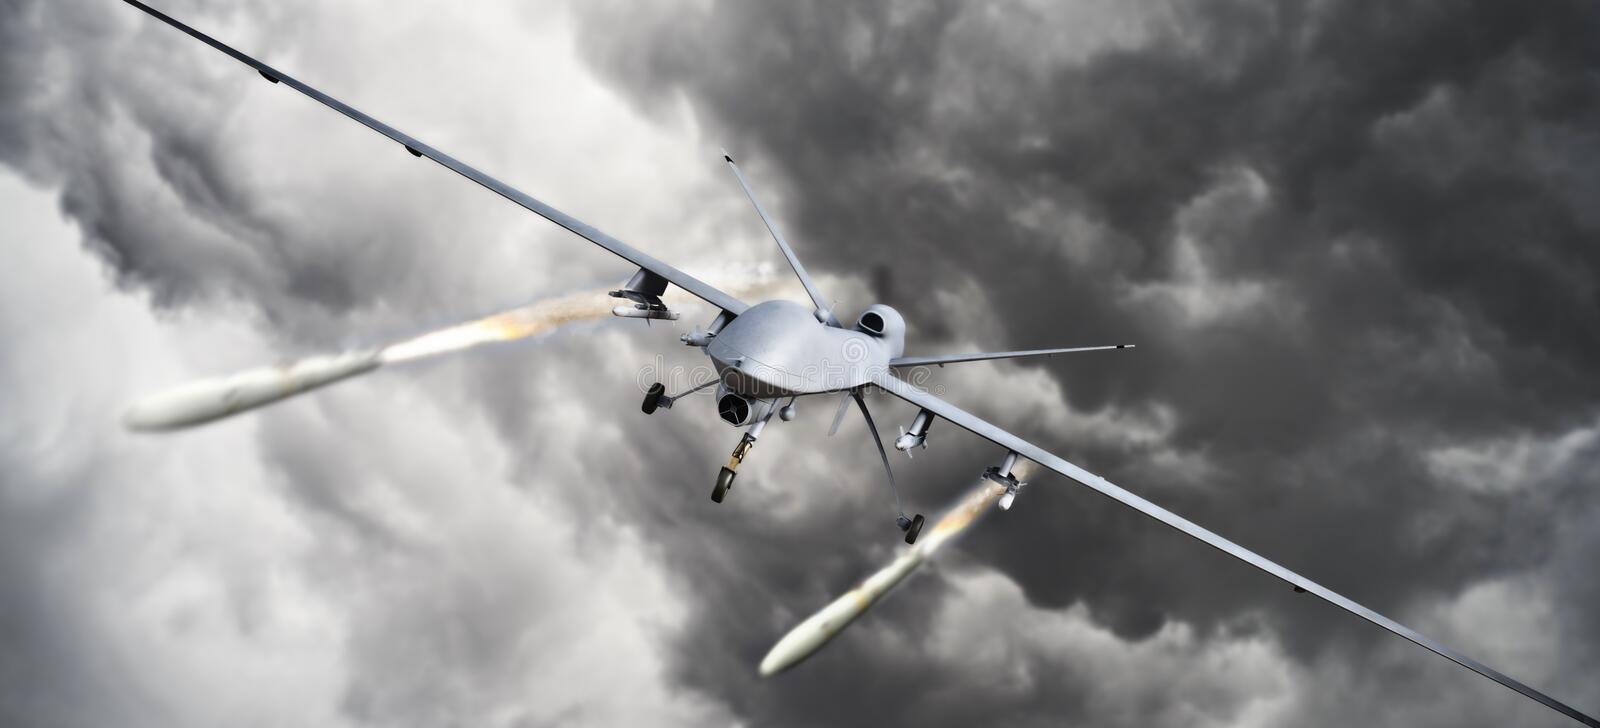 Drone strike .Front view of an unmanned aerial vehicle UAV military drone firing missile rockets at a target . stock illustration